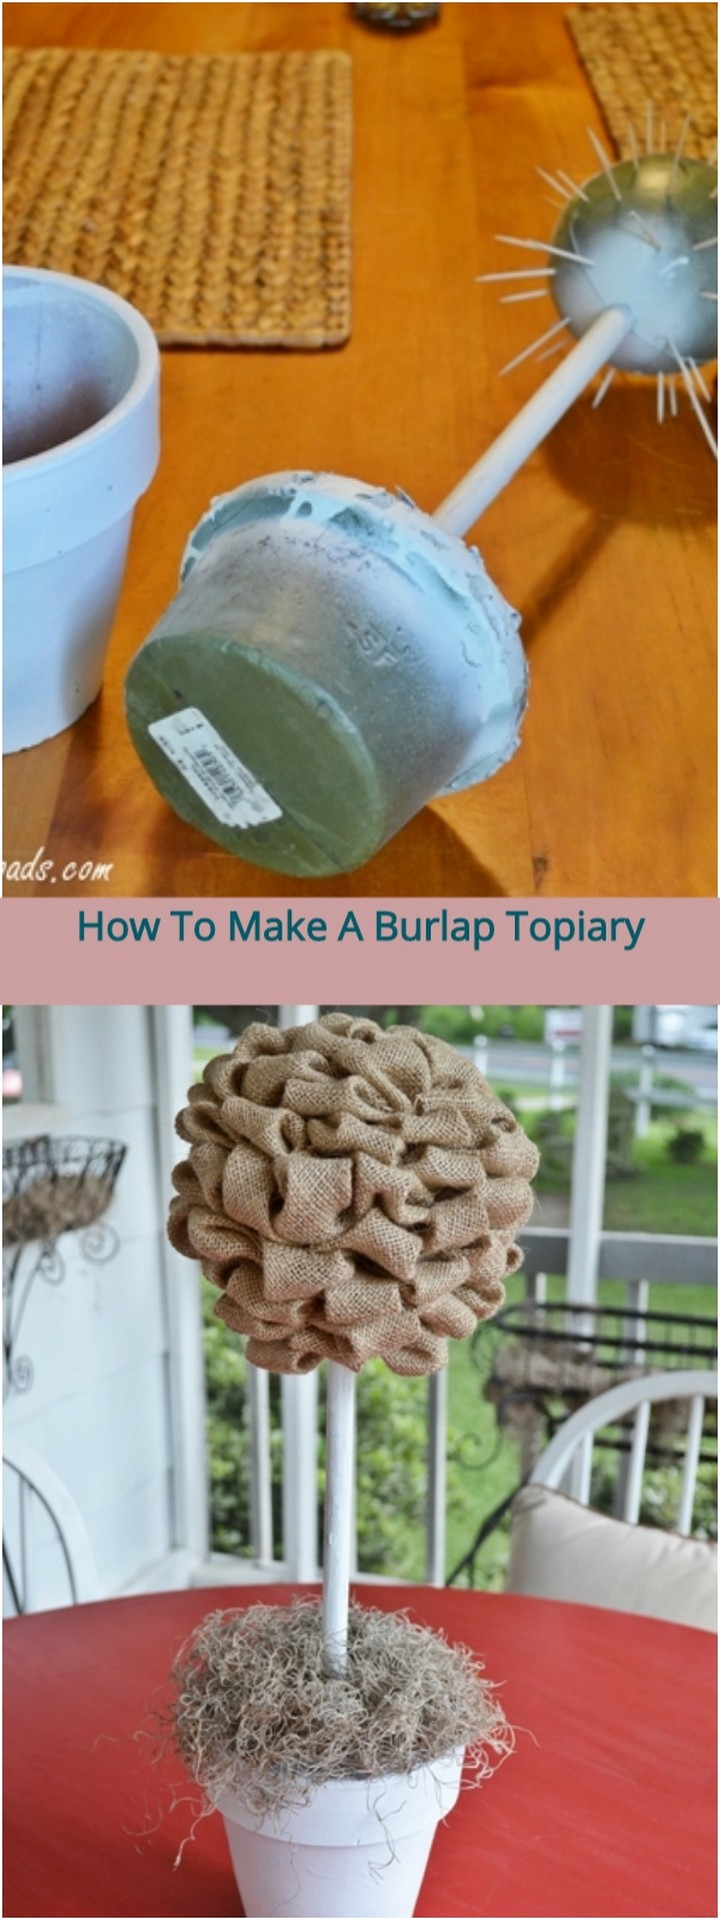 How to Make a Burlap Topiary 1